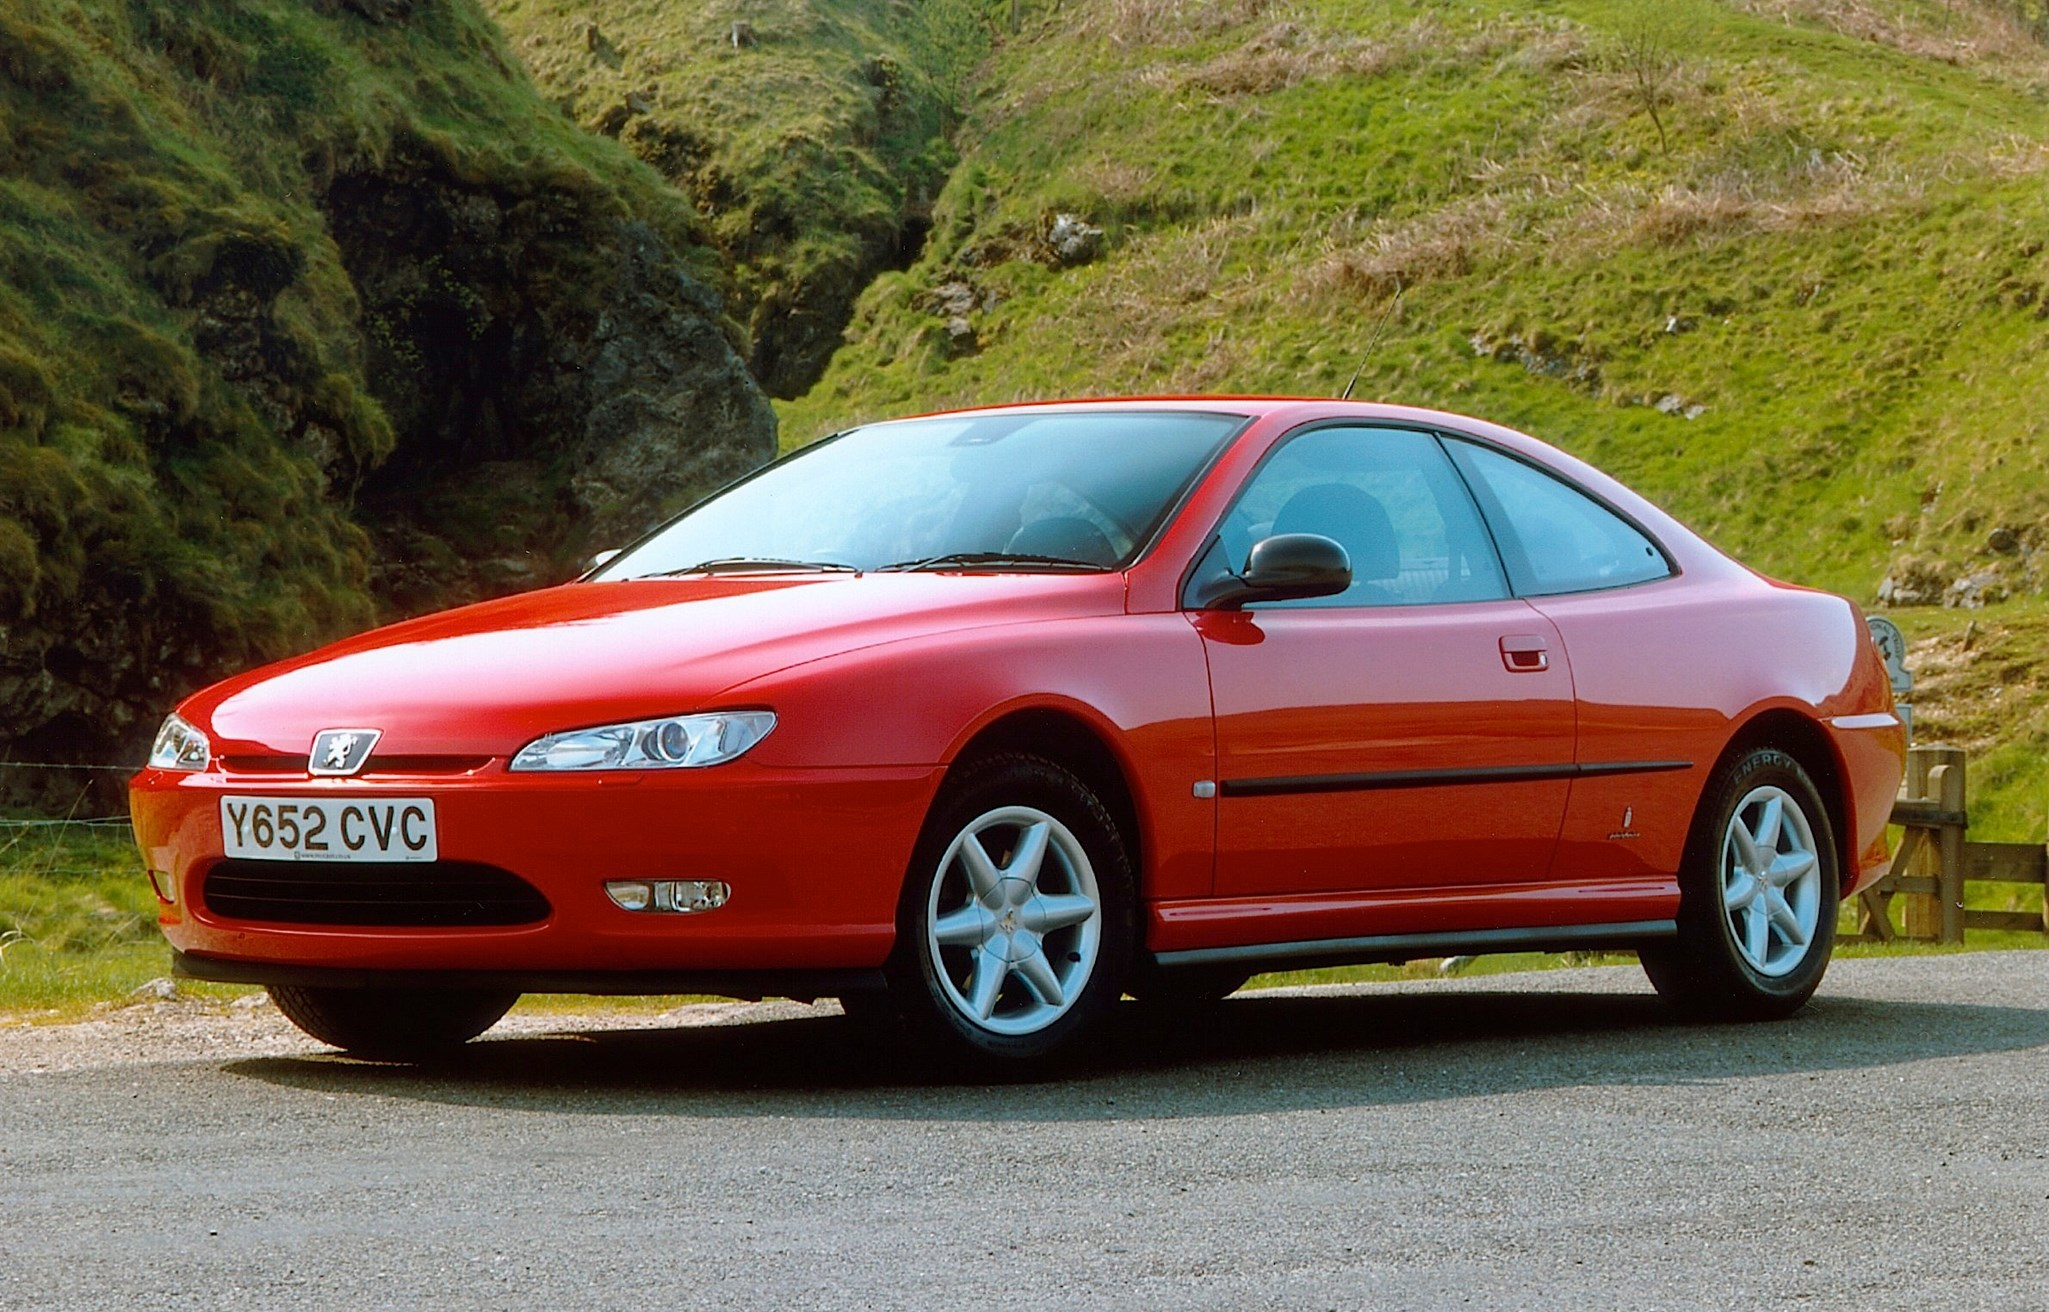 Remembering The Underdogs The 1996 Peugeot 406 Coupe Car Magazine